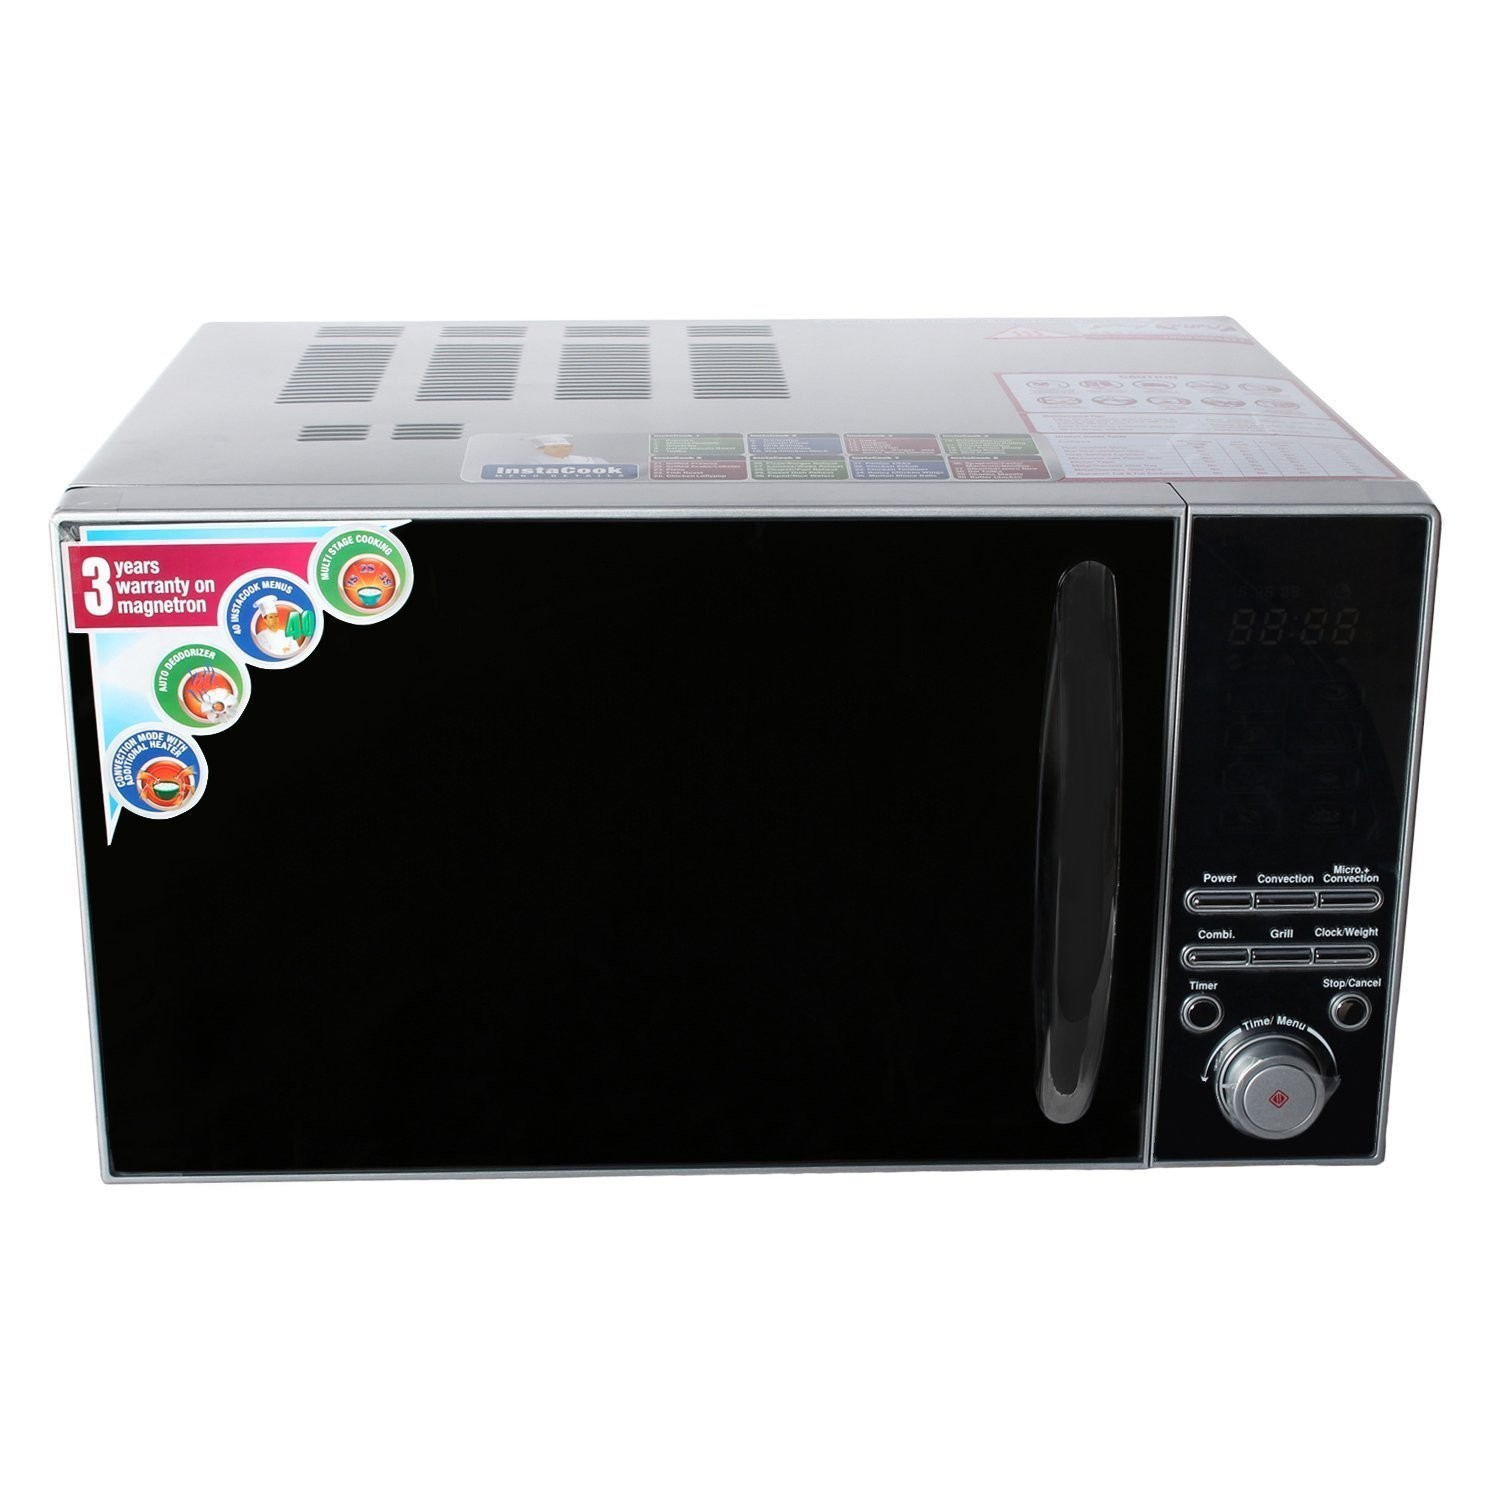 godrej gmx23ca3 23 litre convection microwave oven sliver rh microwaveoven co in First Microwave Oven Invented Percy LeBaron Spencer Microwave Oven